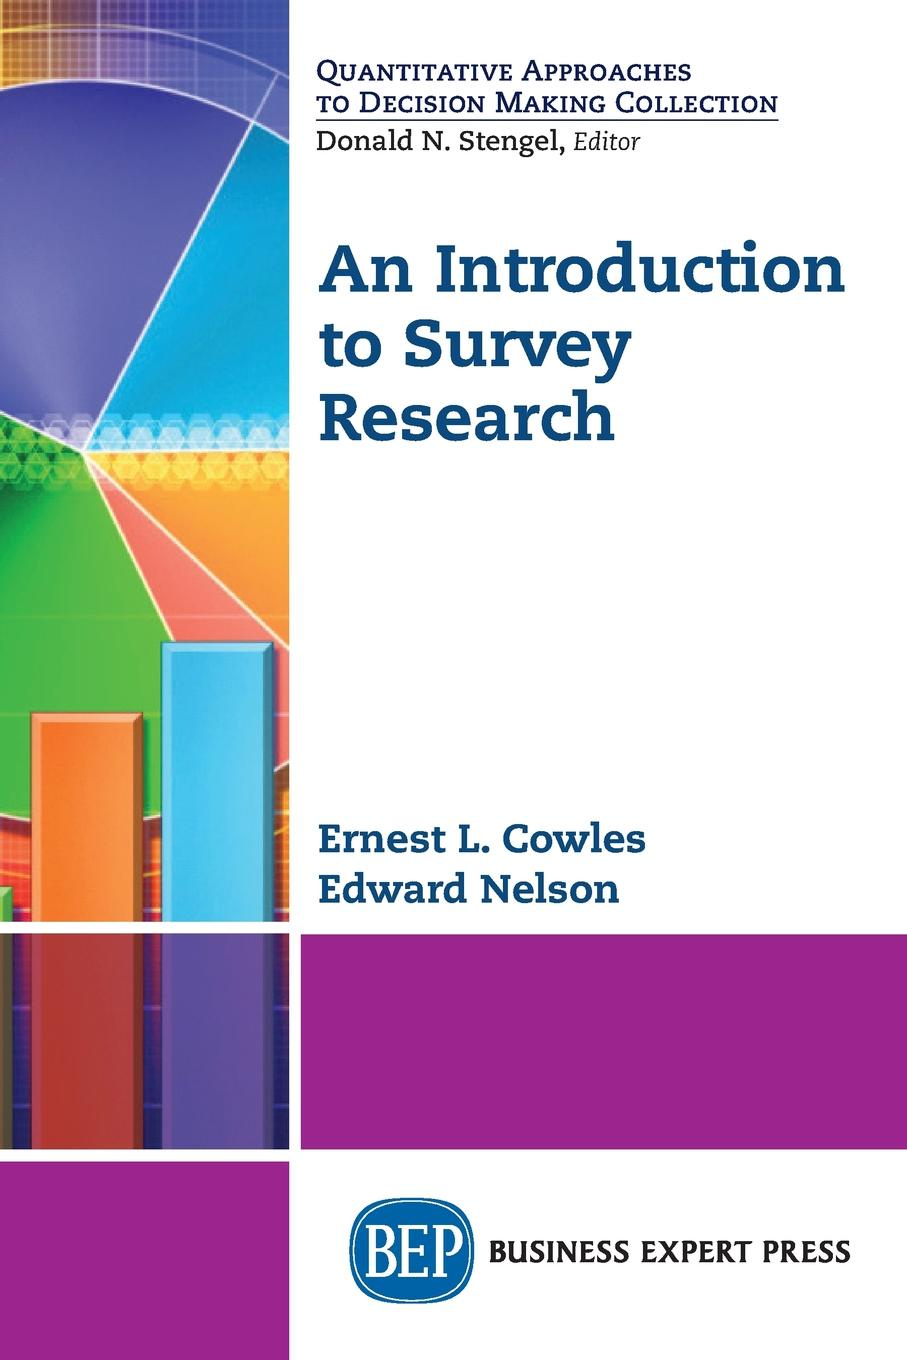 Ernest Cowles, Edward Nelson An Introduction to Survey Research delano ducasse lawrence o bryant and lynda t goodfellow survey of the knowledge